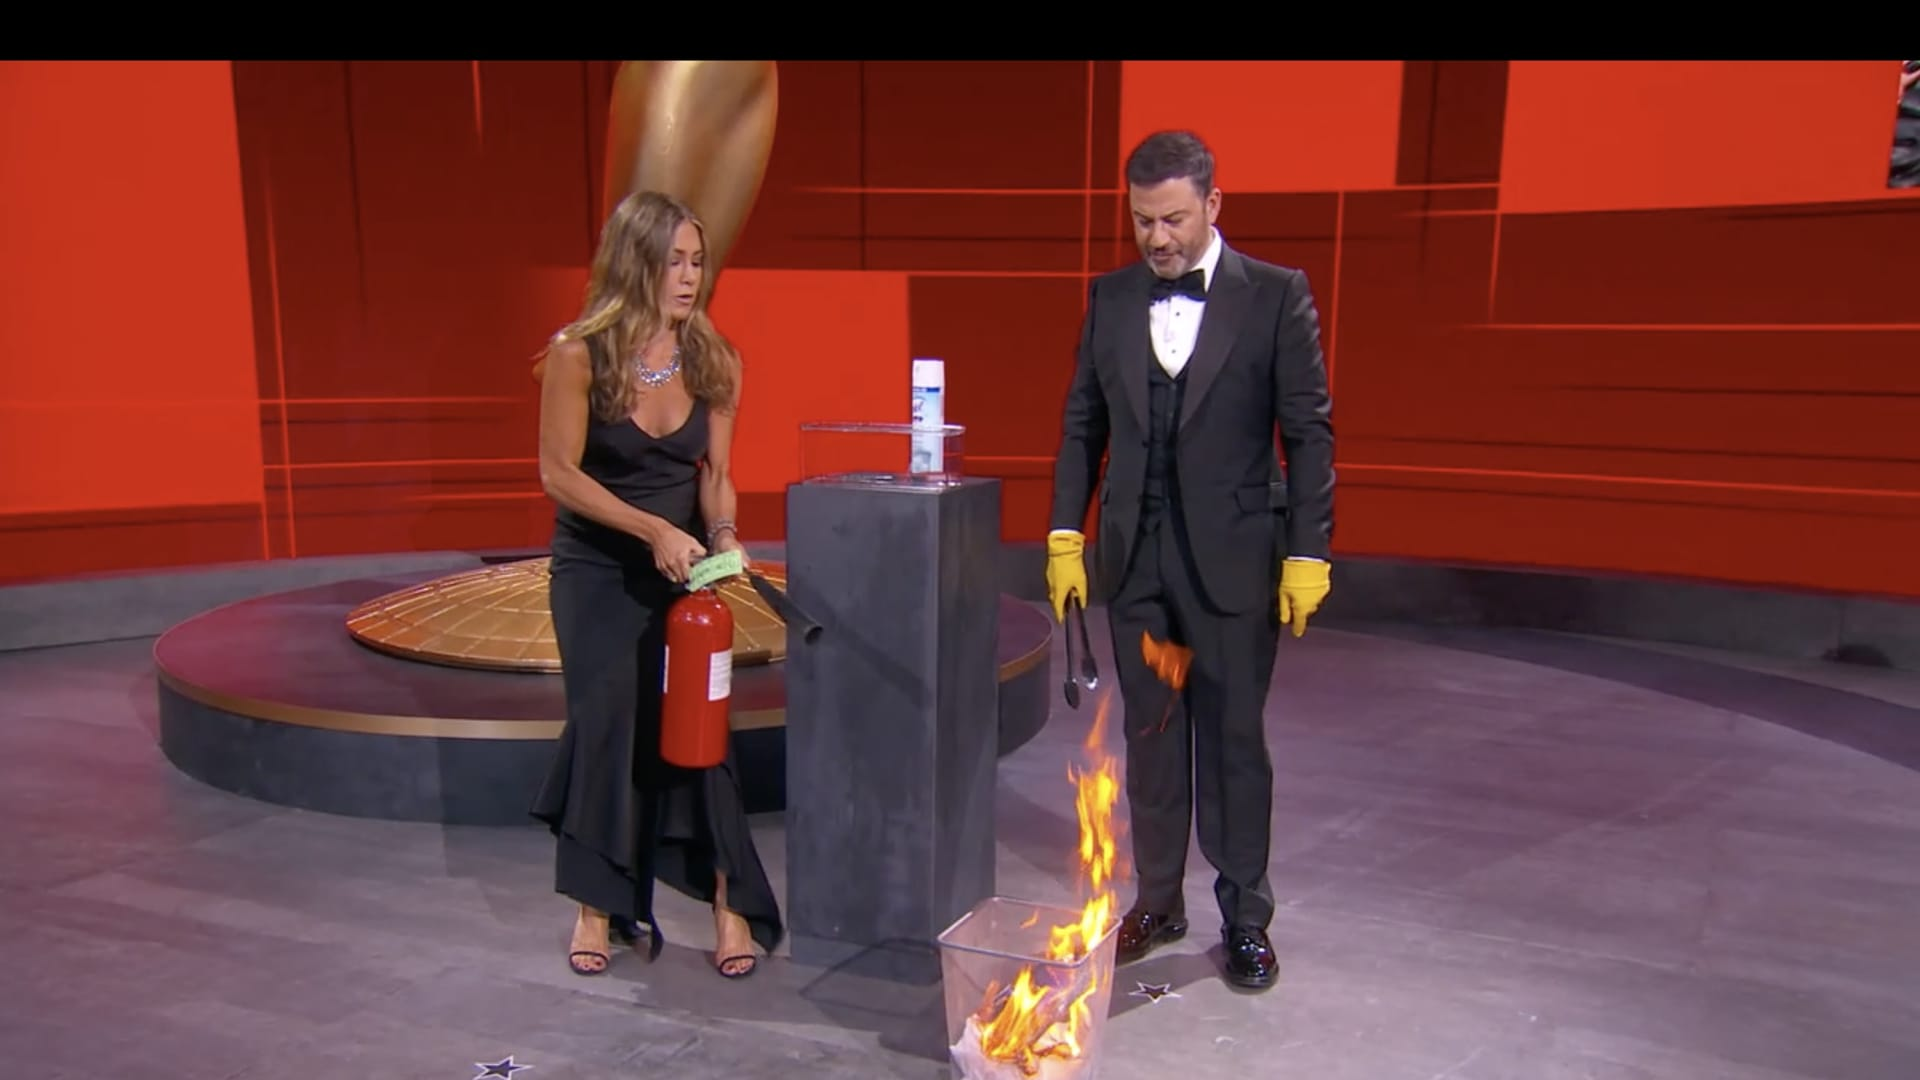 Host Jimmy Kimmel (right) and presenter Jennifer Aniston (right) work to put out a fire on the set of the 72nd Emmy Awards will broadcast SUNDAY, SEPT. 20 (8:00 p.m. EDT/6:00 p.m. MDT/5:00 p.m. PDT), on ABC. (ABC via Getty Images) JENNIFER ANISTON, JIMMY KIMMEL